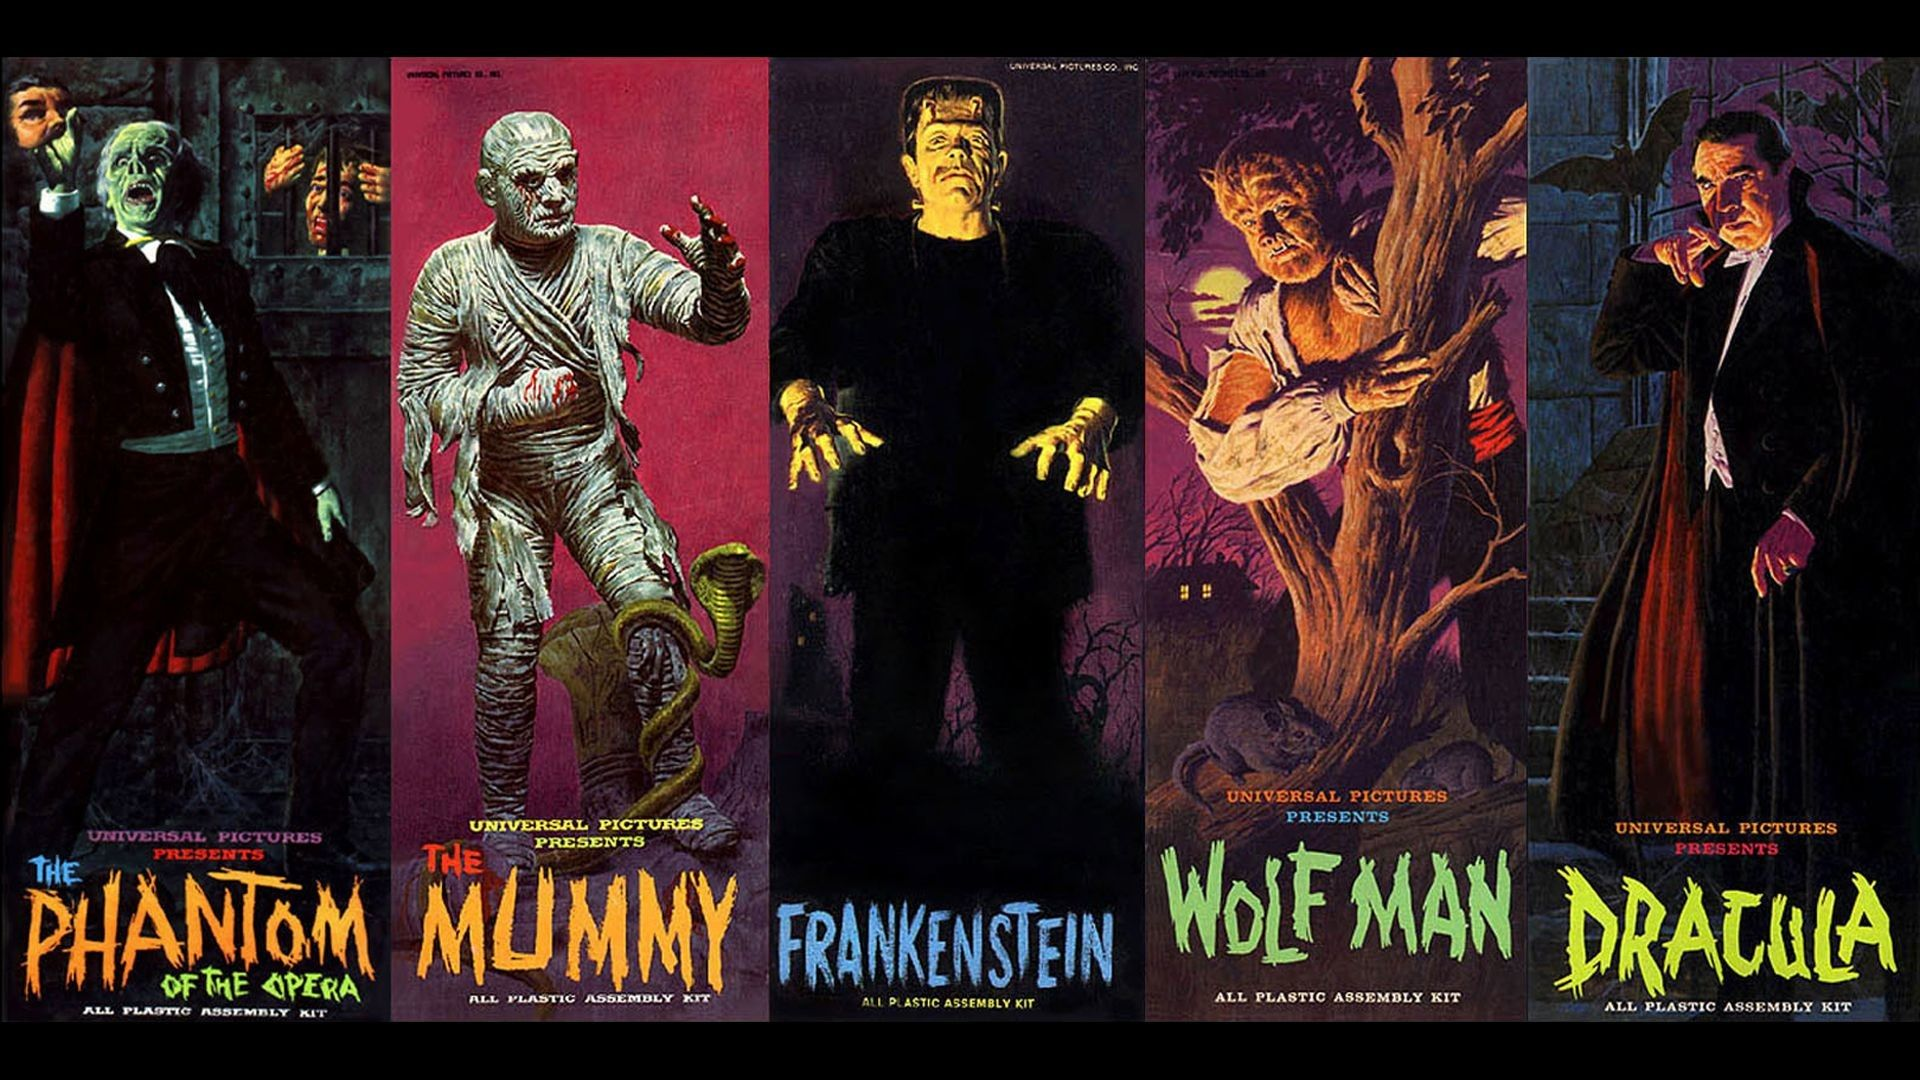 1920x1080 Aurora Monster Model Box Covers From The 1960 S Wallpaper By Bill Morris See More Classic Monsters Universal Monsters Art Movie Monsters